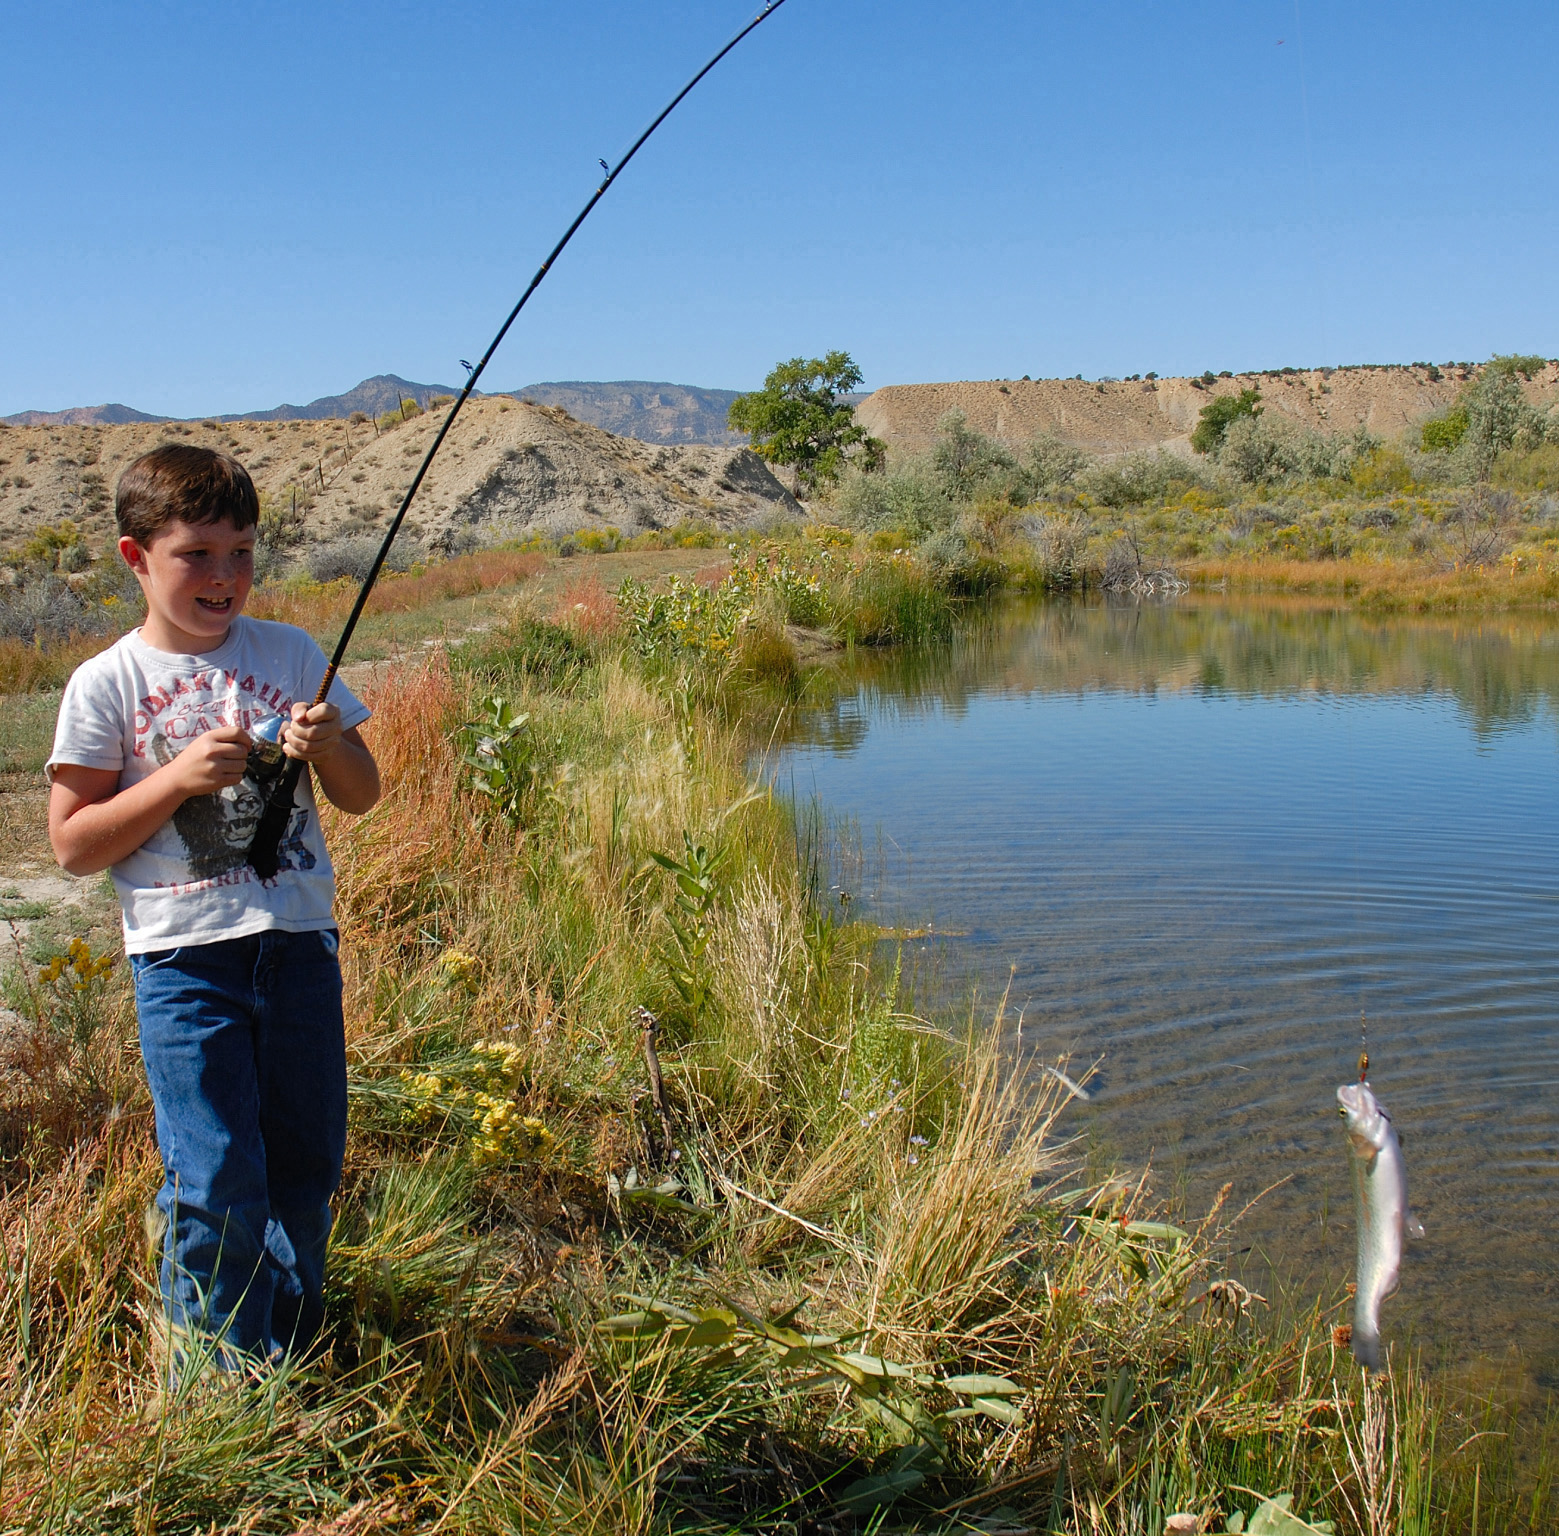 No license needed: 'Free Fishing Day' in Southern Utah